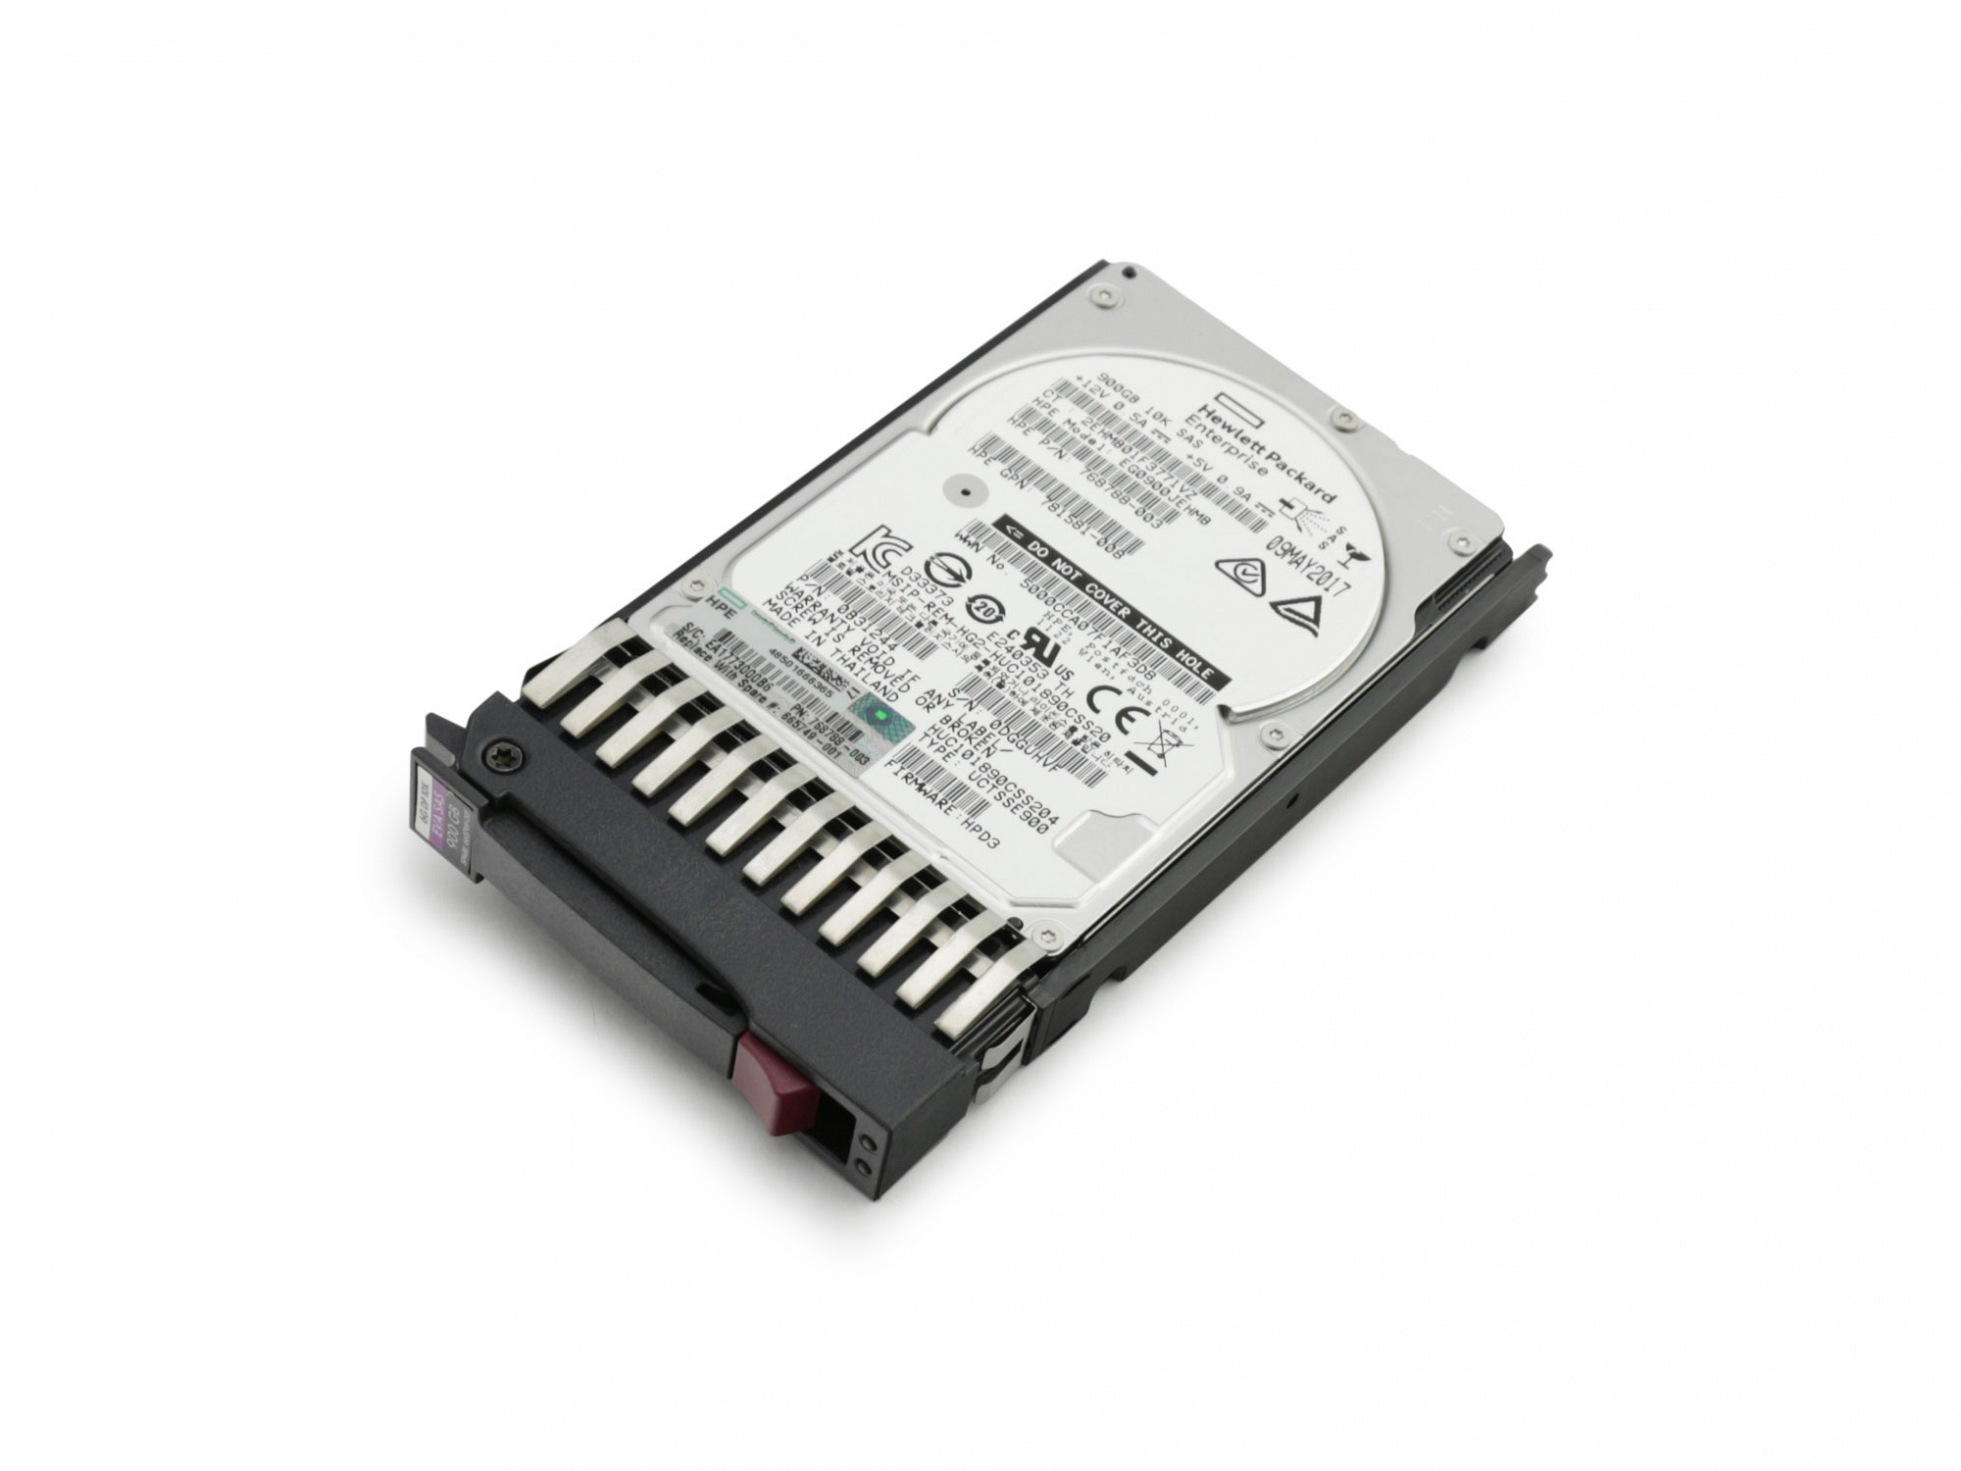 HP P6550 EVA Dual Controller FC Array Enclosure Server Festplatte HDD 900GB (2,5 Zoll / 6,4 cm) SAS II (6 Gb/s) 10K inkl. Hot-Plug